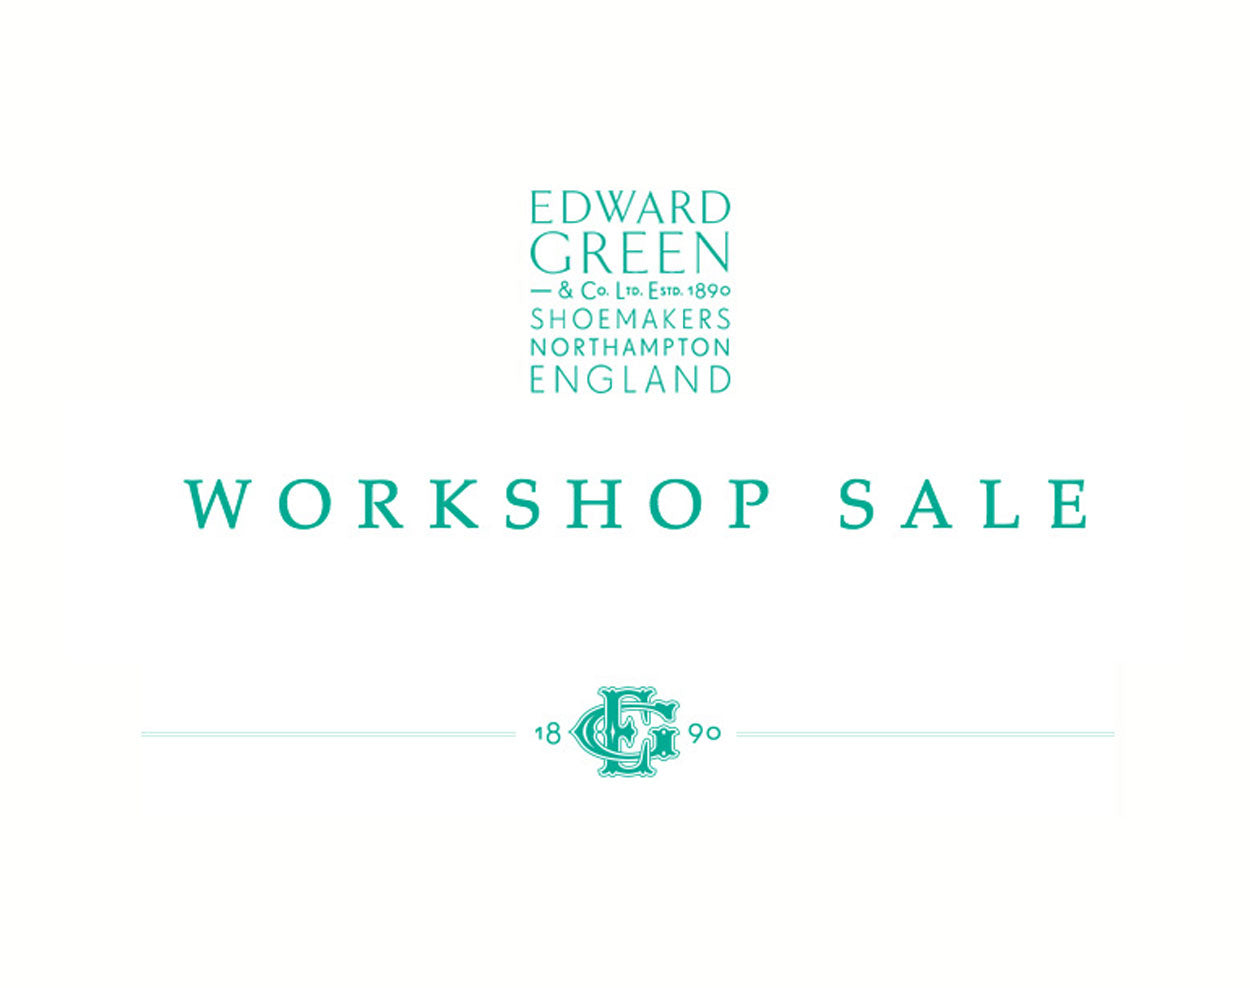 Edward Green workshop sale - significant savings on England's finest